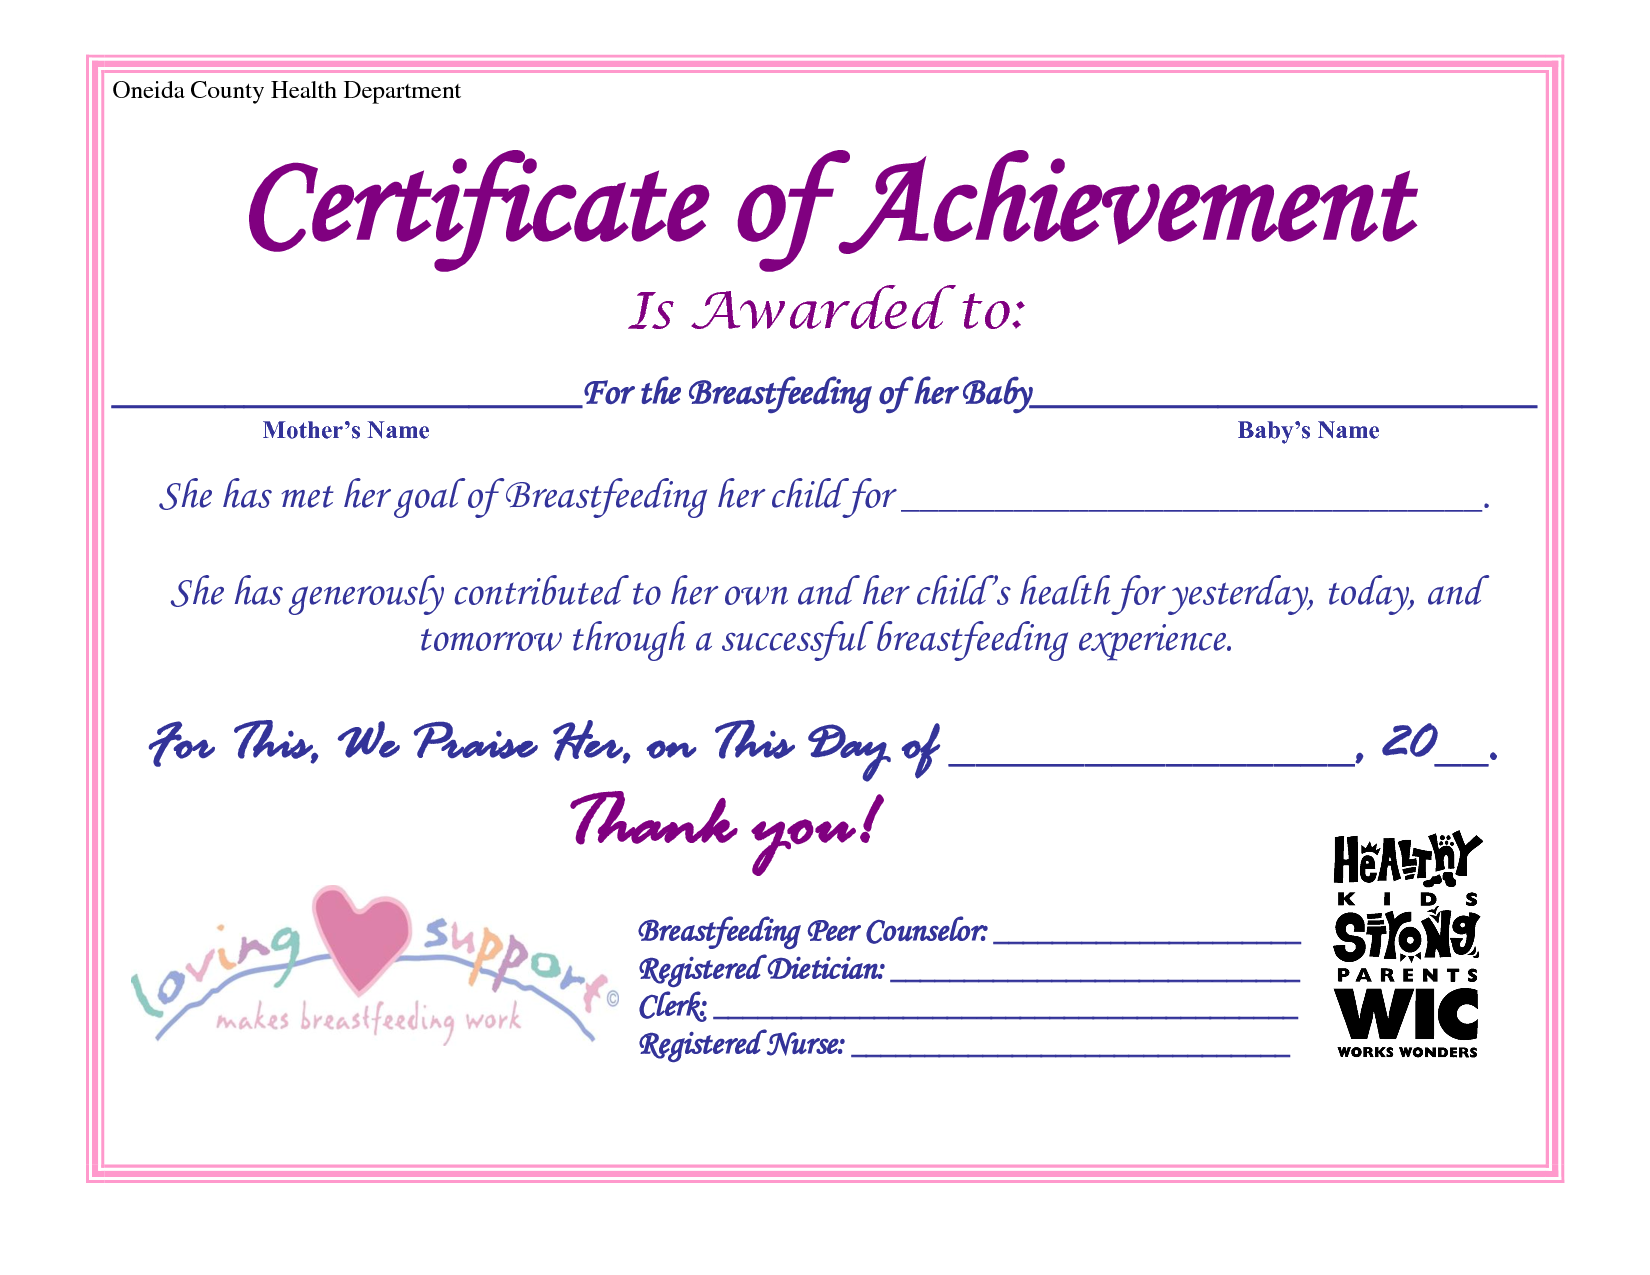 A Breastfeeding Certificate Awesome Breastfeeding Kids Health Health Department